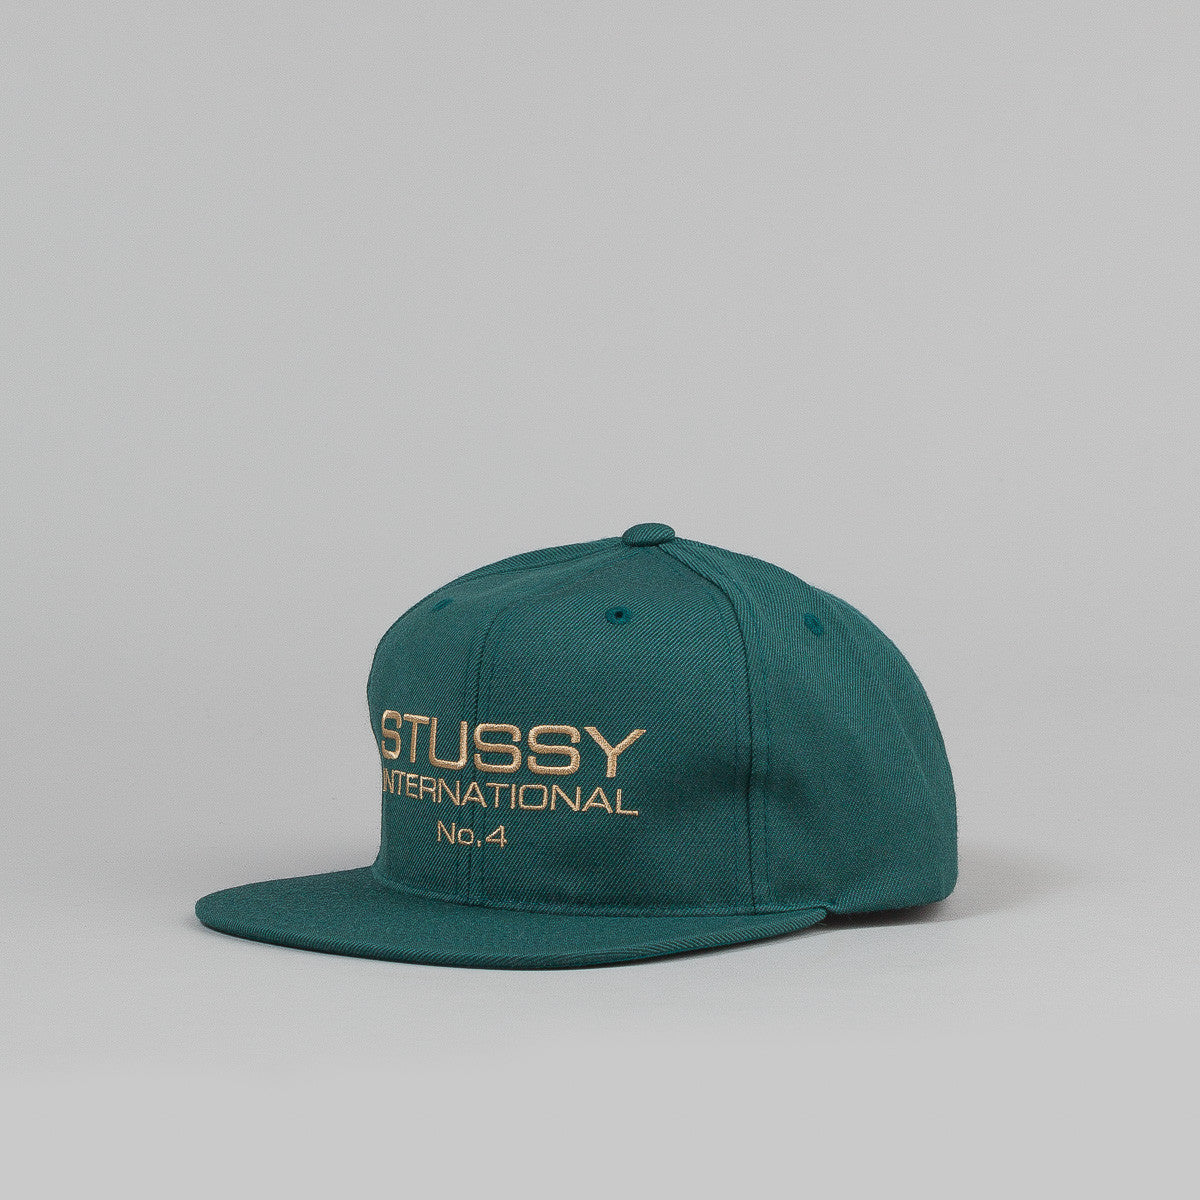 Stussy International No.4 Snapback Cap